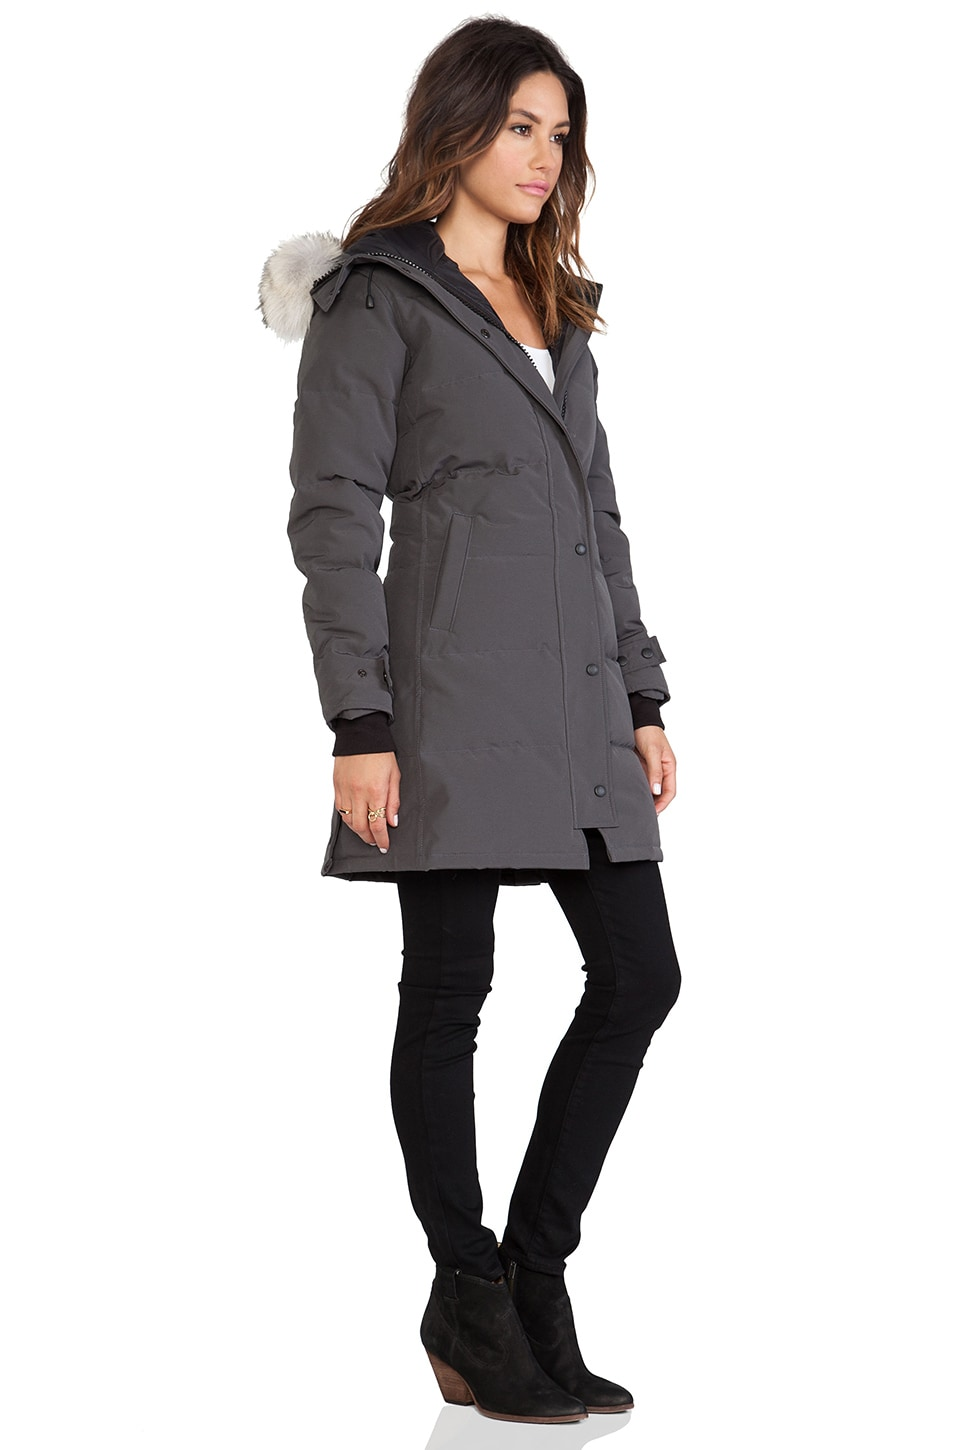 Canada Goose toronto sale authentic - Canada Goose Shelburne Parka with Coyote Fur Trim in Graphite ...